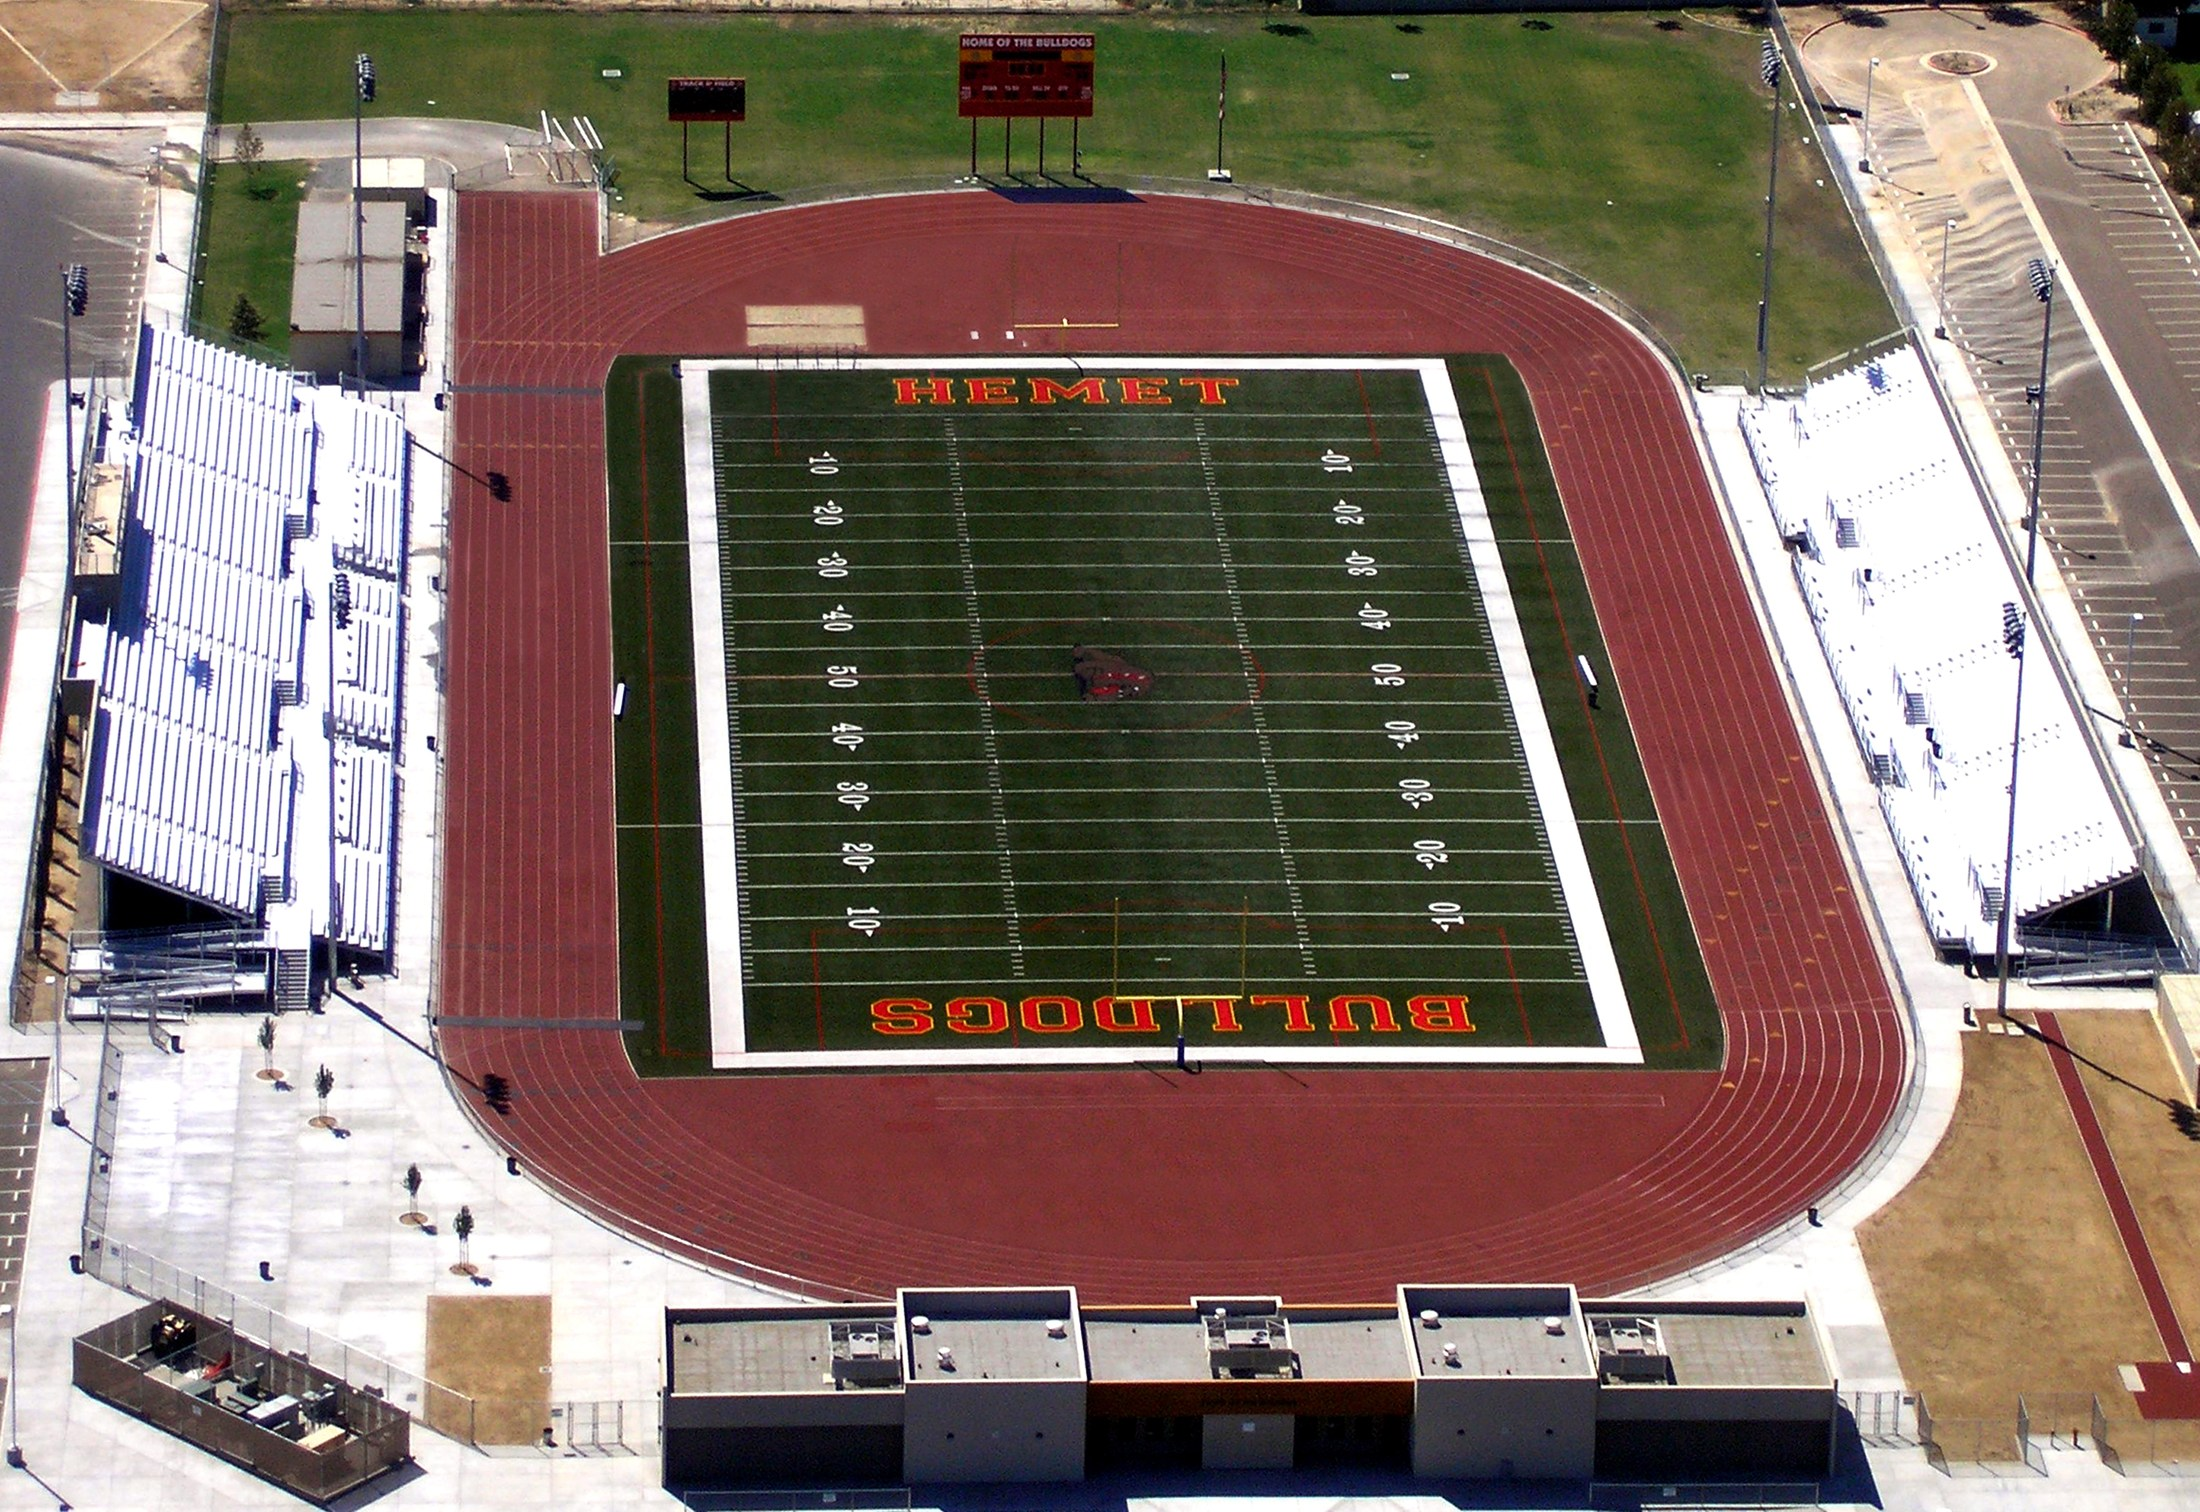 Hemet High School Football Stadium